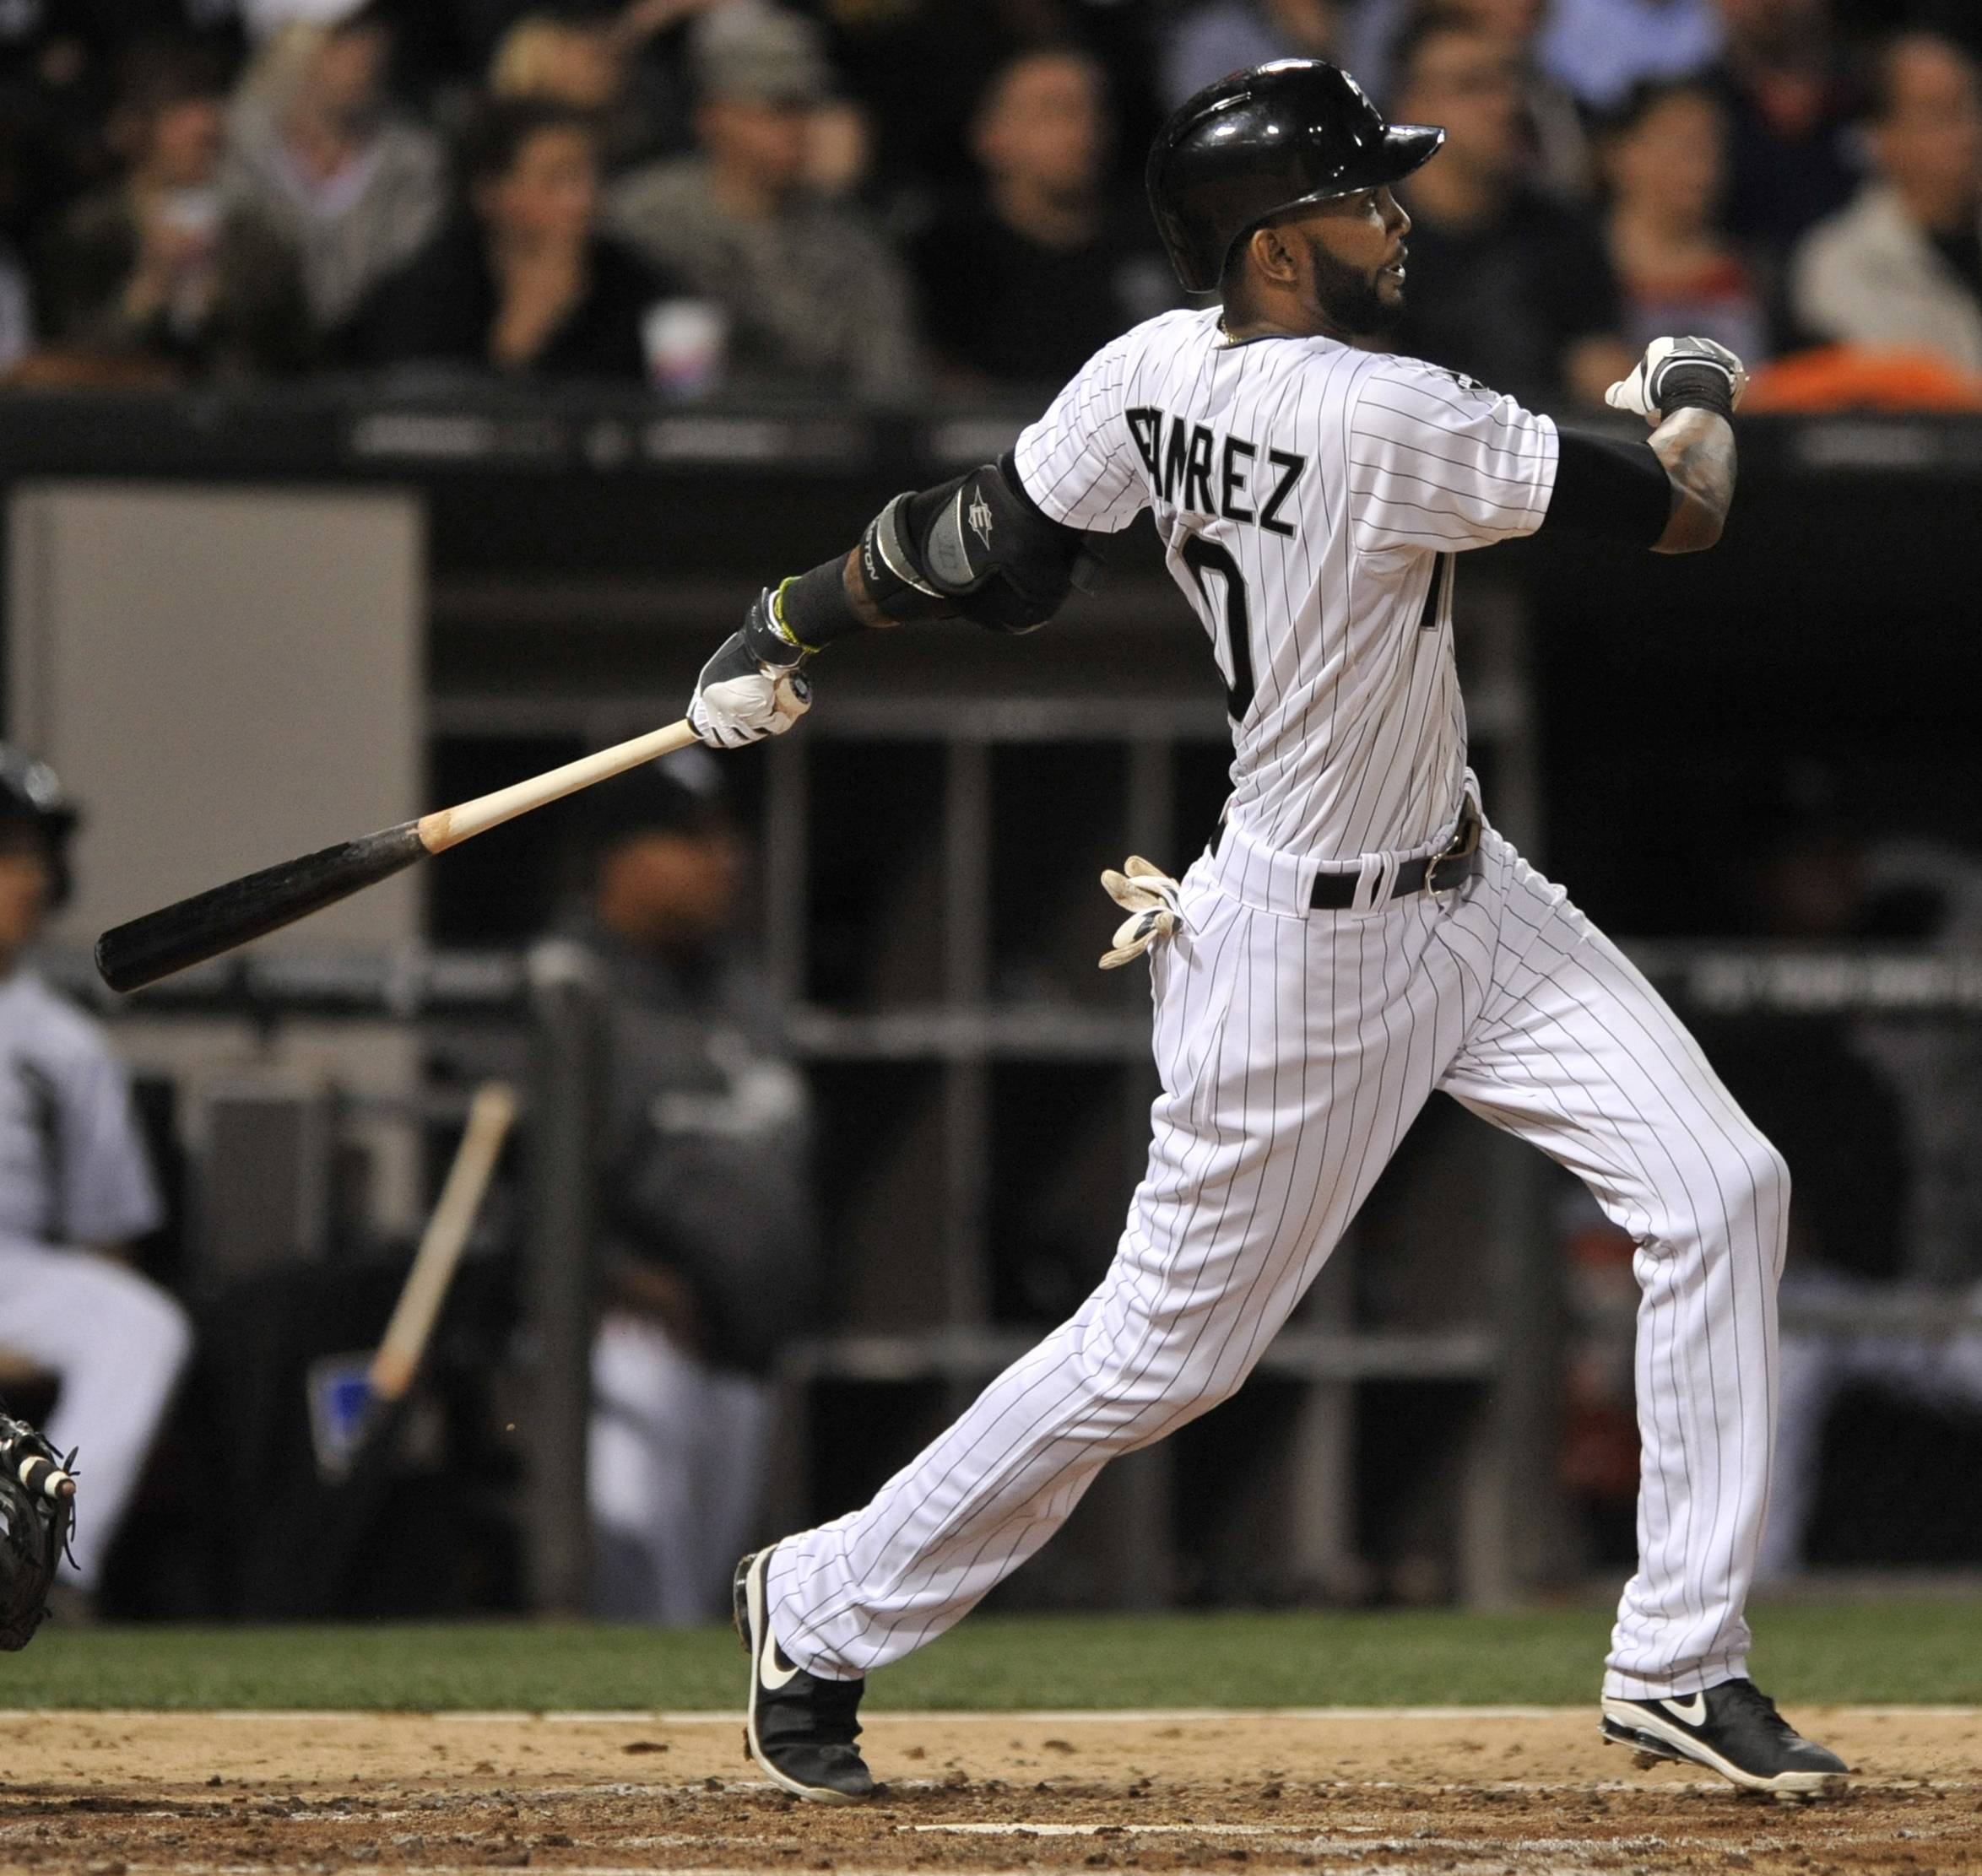 The White Sox's Alexei Ramirez watches his grand slam during Friday's game against the Arizona Diamondbacks at U.S. Cellular Field.